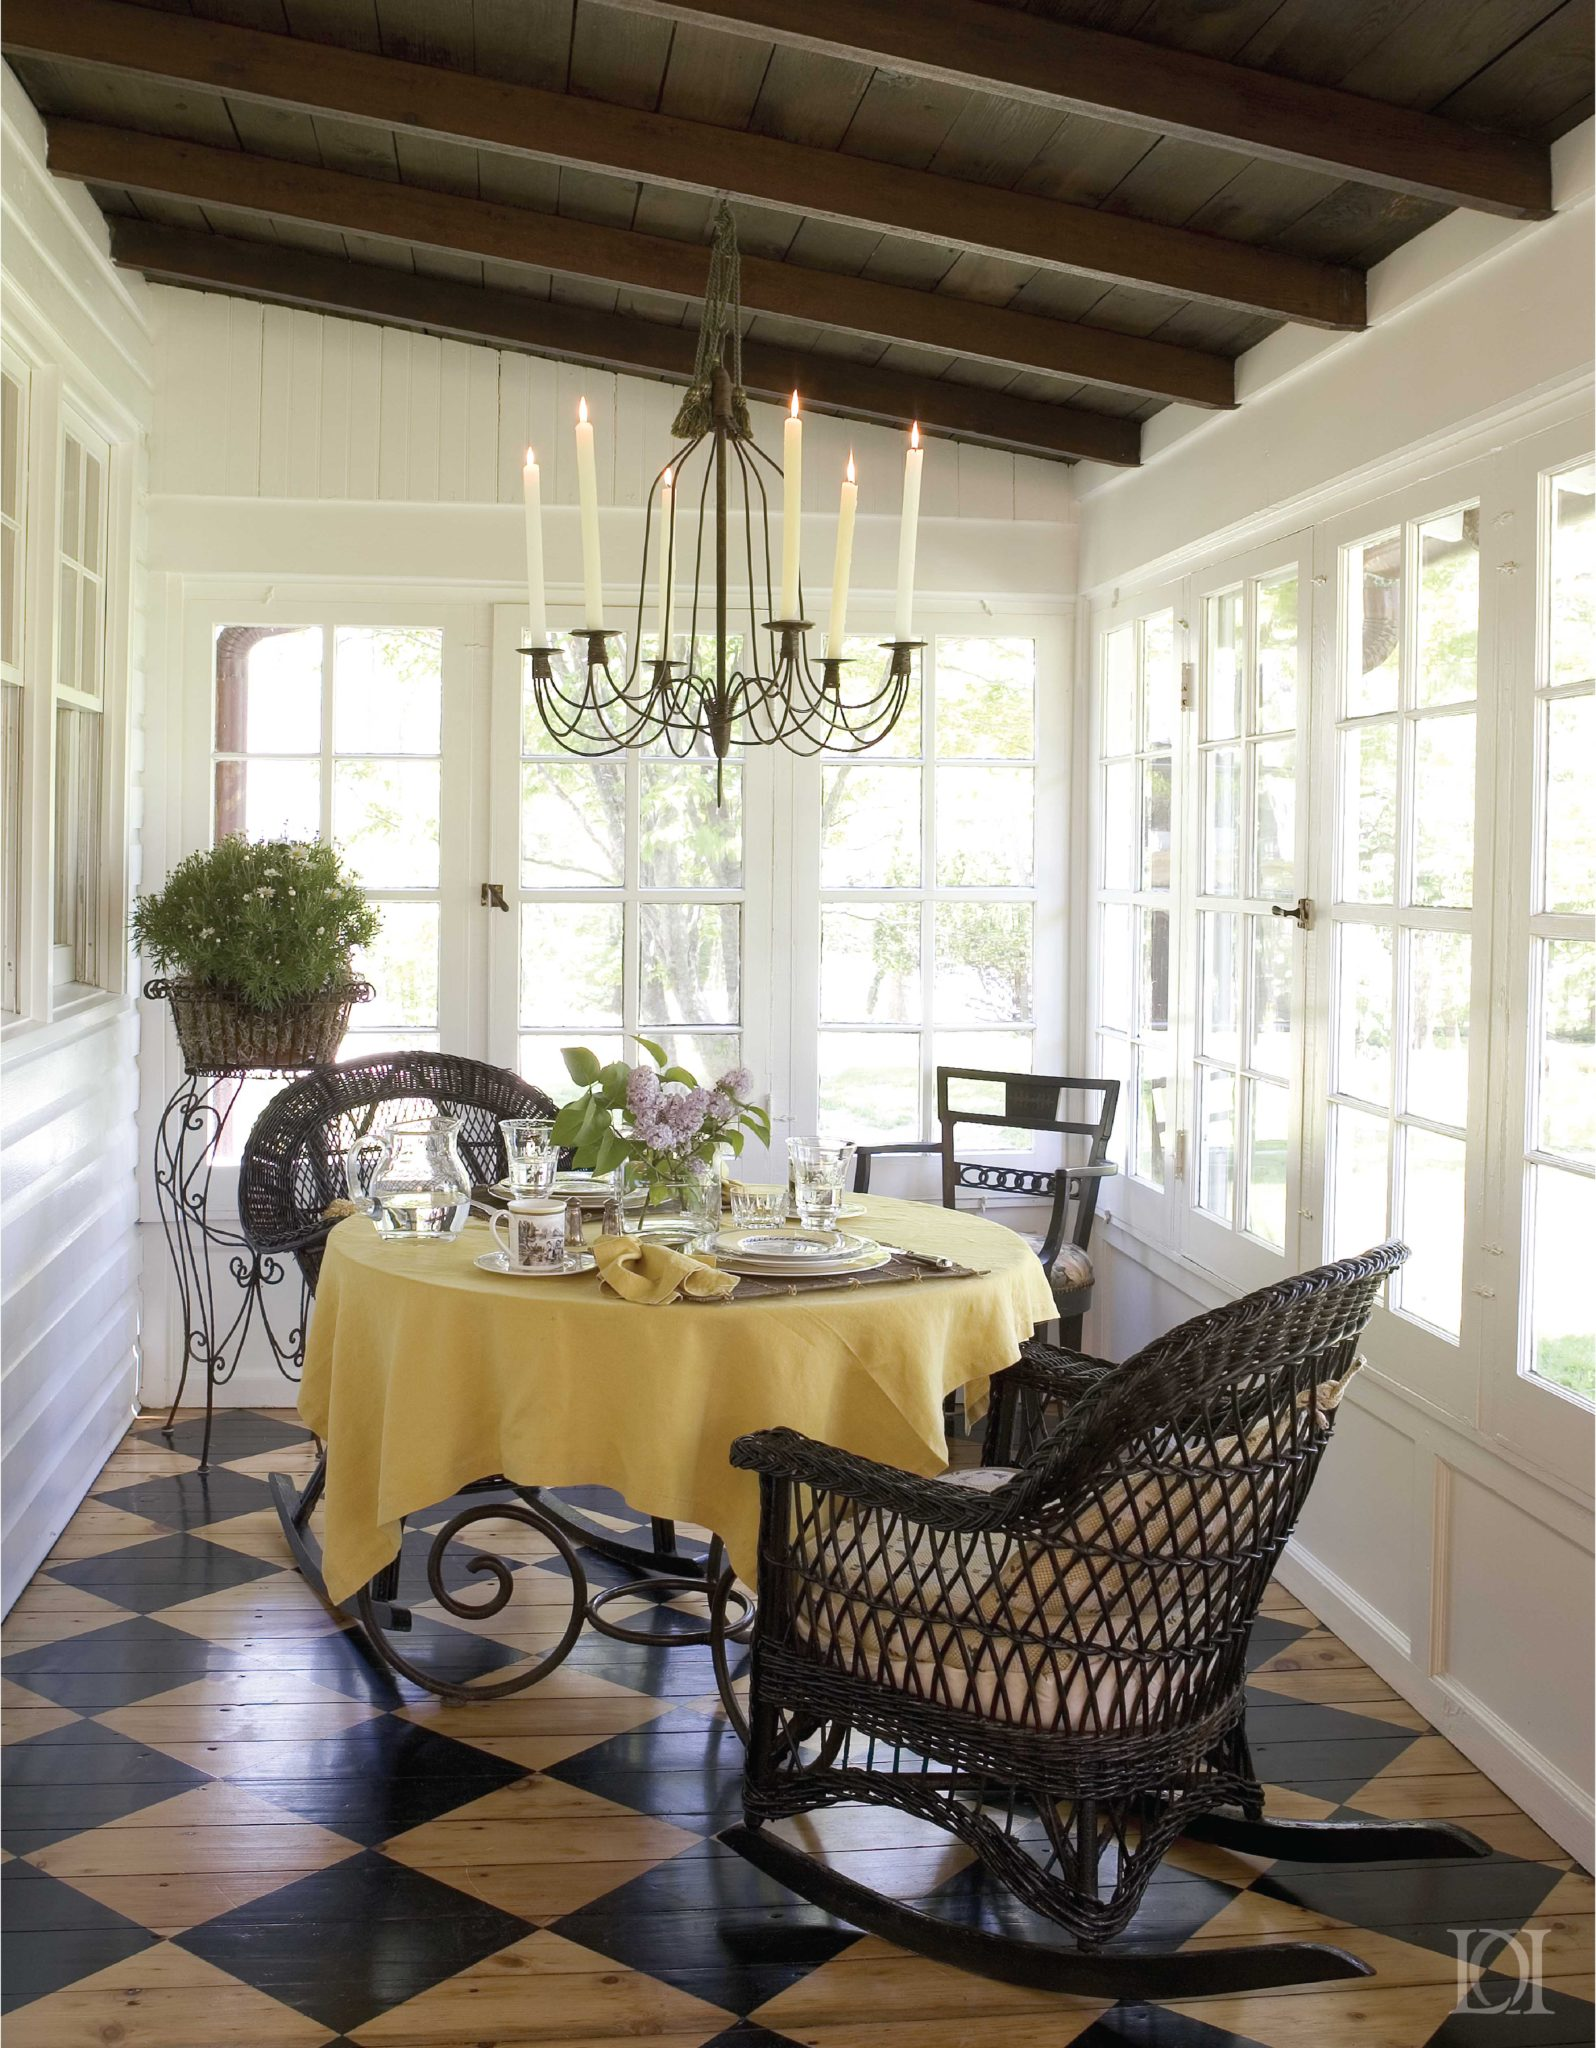 The Cottage White Porch, Beam Ceiling, Painted Pine Floorboards, Wicker Rockers by Deborah Leamann Interior Design